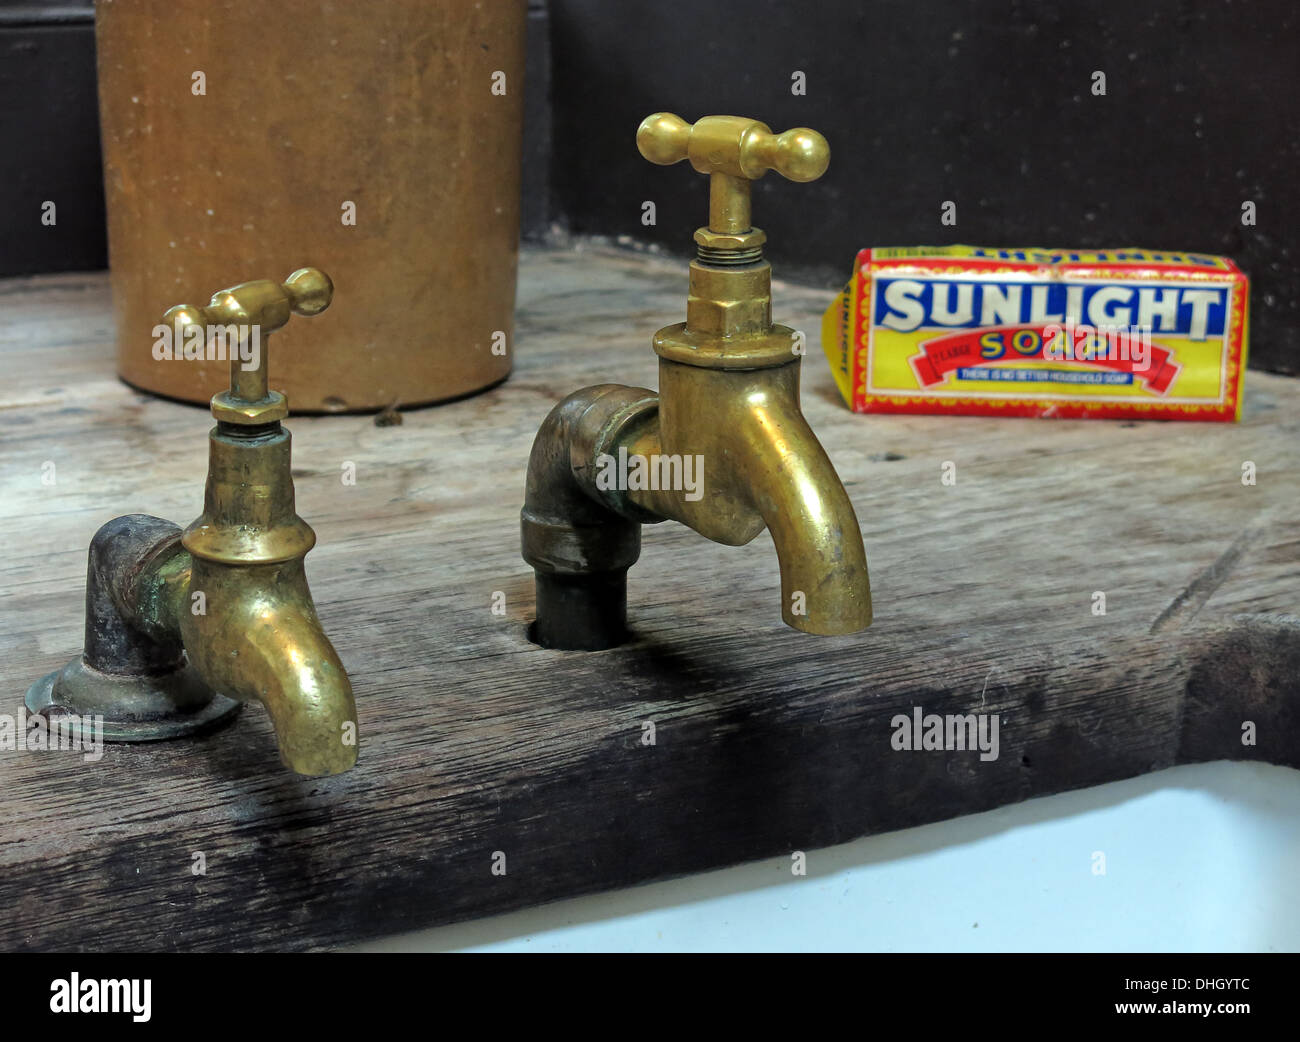 Two old historic Victorian brass taps, Lever Sunlight soap over a ...